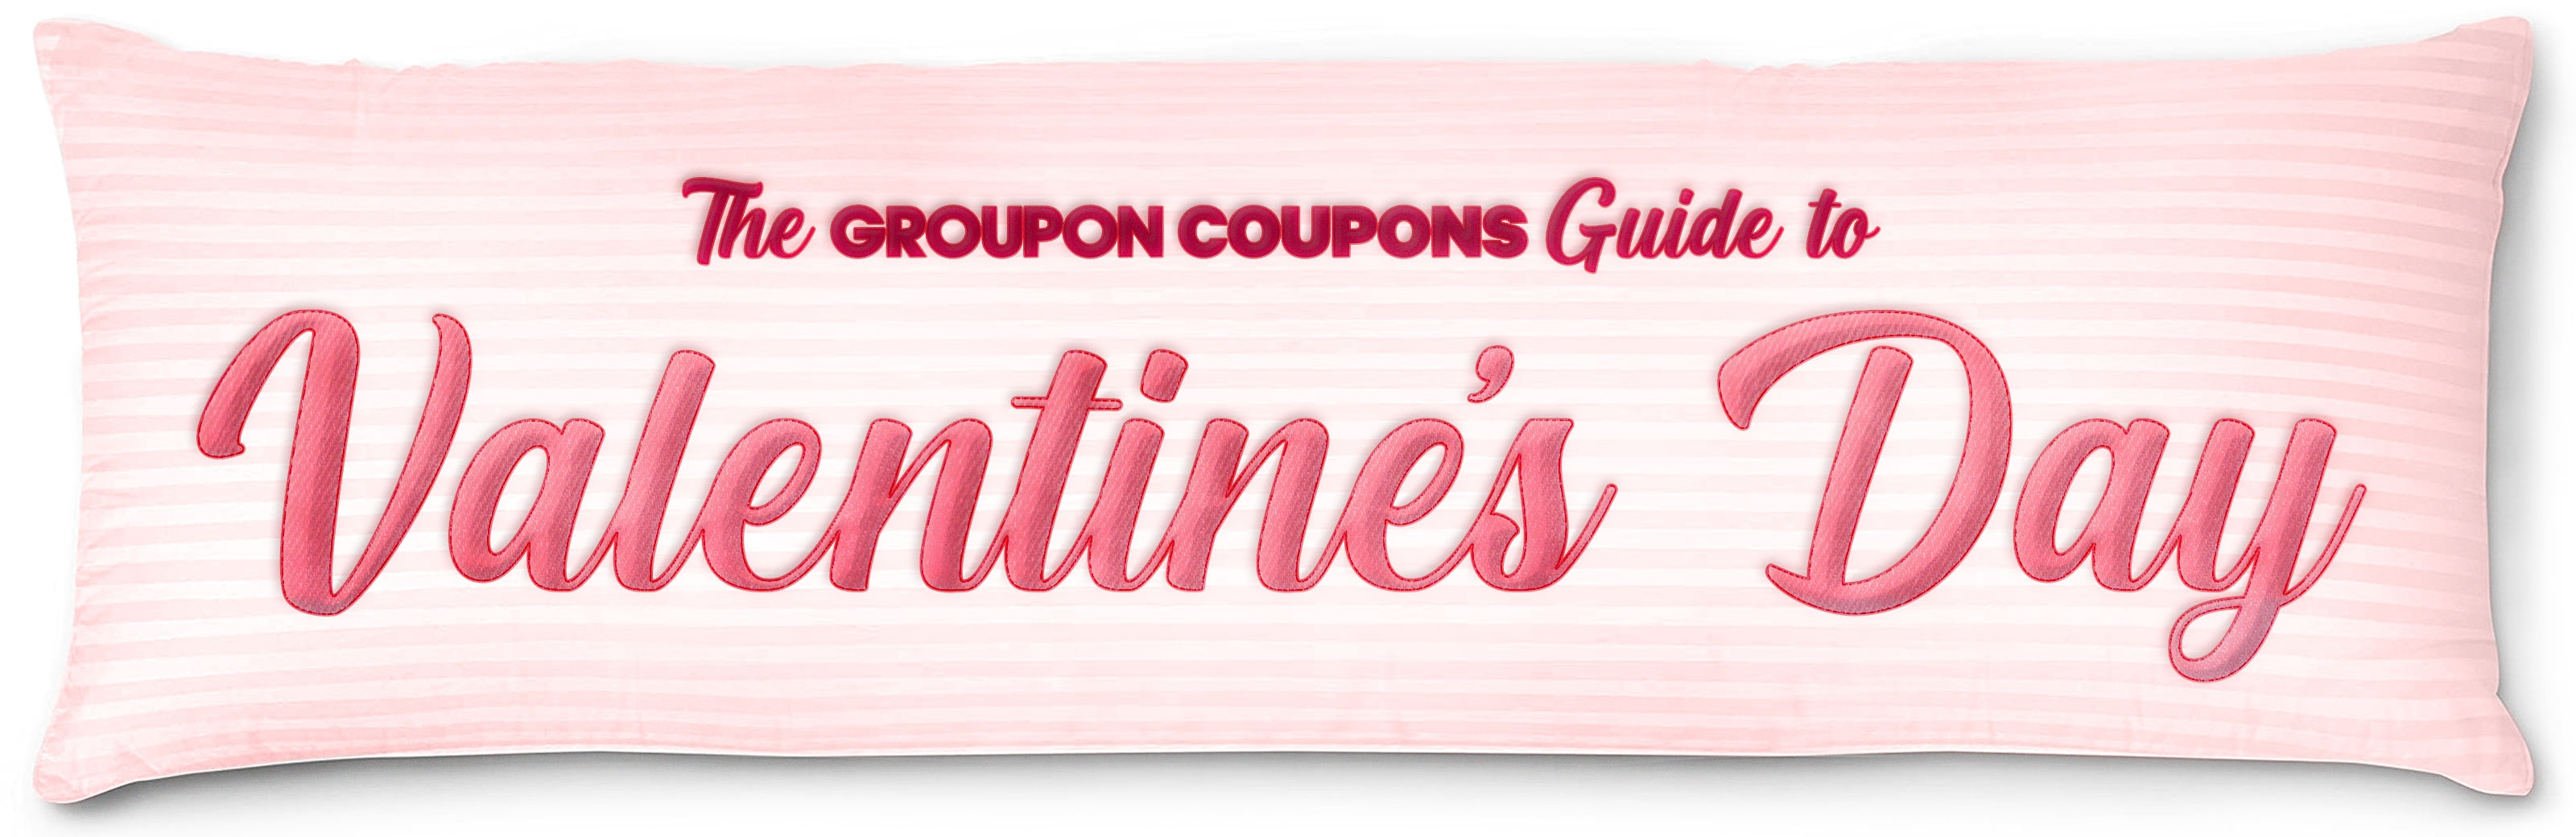 Valentine's Day Gifts Groupon Coupons